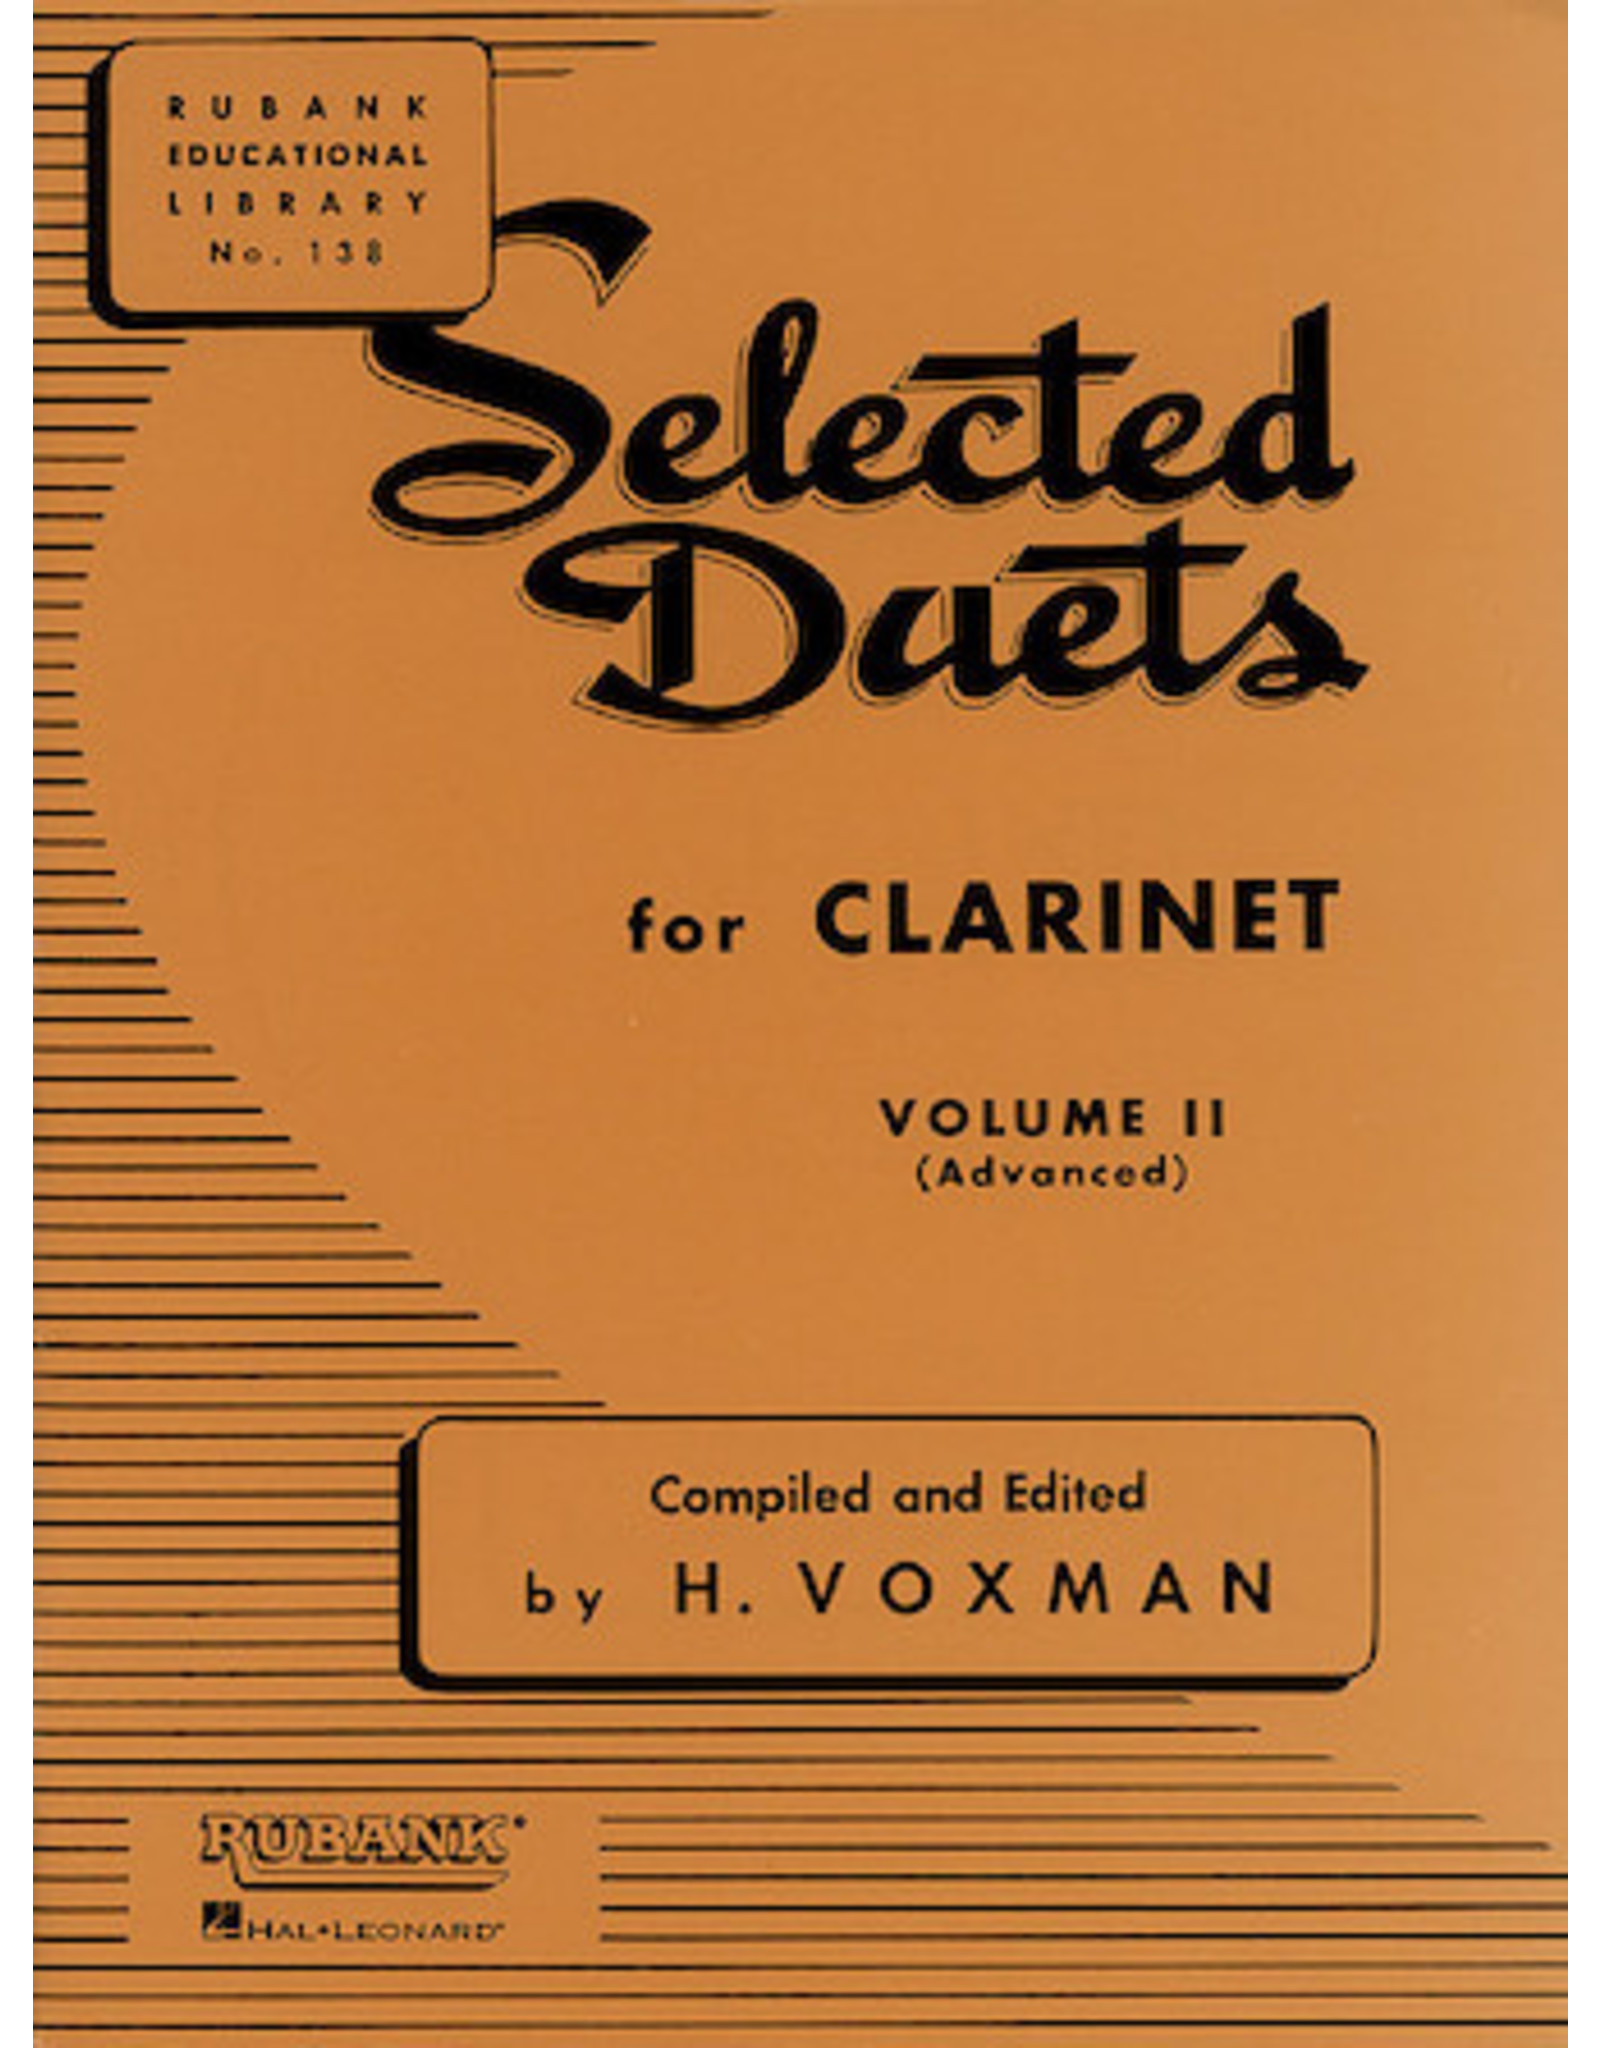 Hal Leonard Selected Duets for Clarinet Volume 2 - Advanced edited H. Voxman Ensemble Collection